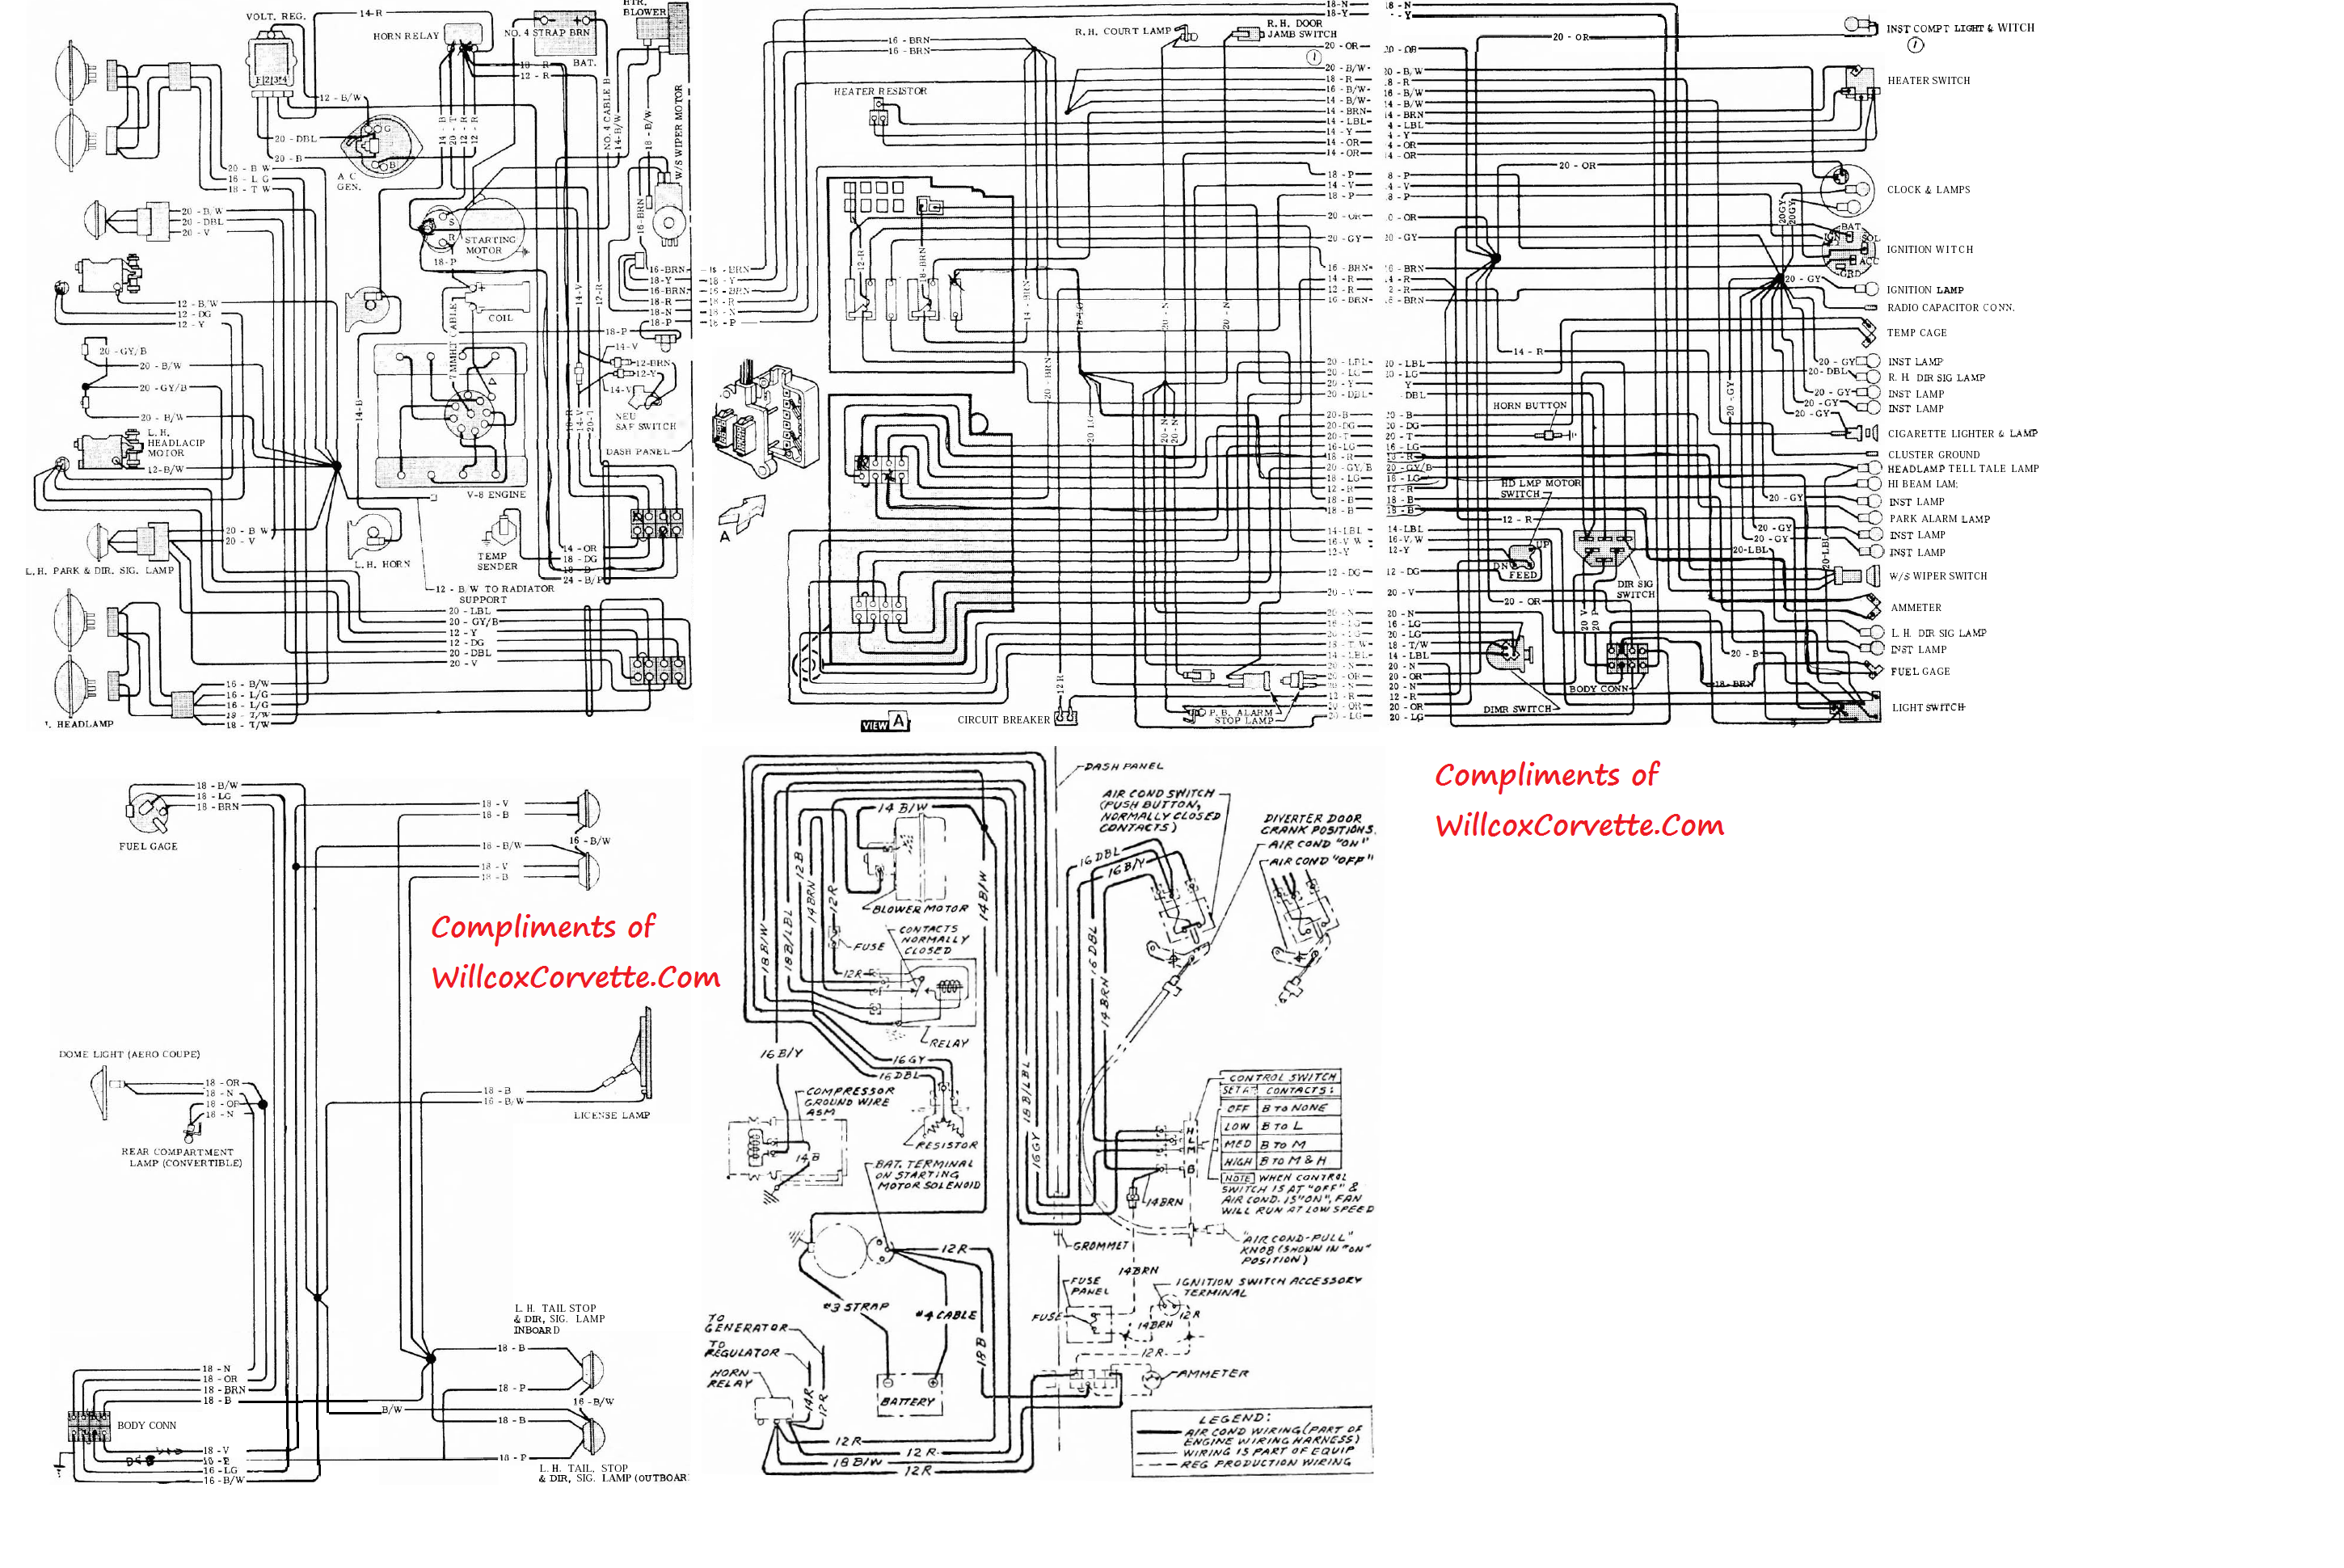 1963 Corvette Tracer Wiring Diagram Tracer Schematic 1963 corvette tracer wiring diagram tracer schematic willcox 2001 corvette wiring diagram at reclaimingppi.co